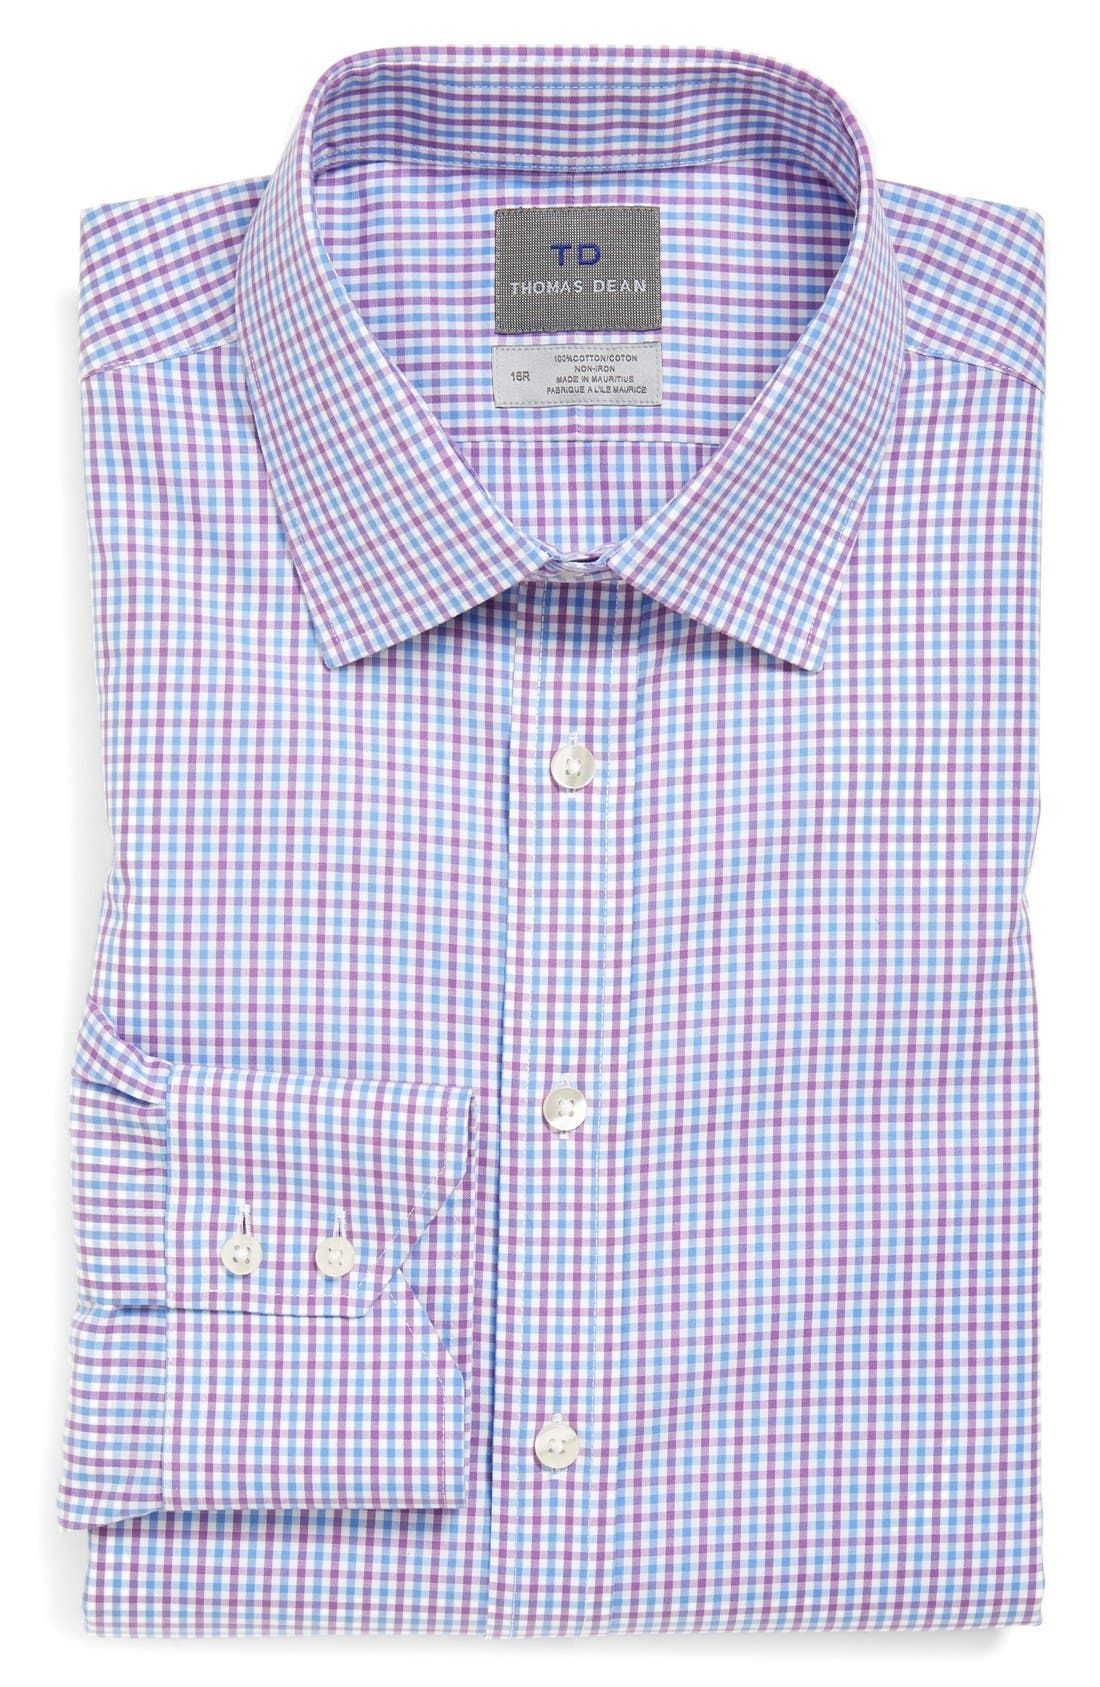 Alternate Image 1 Selected - Thomas Dean Regular Fit Non-Iron Check Dress Shirt